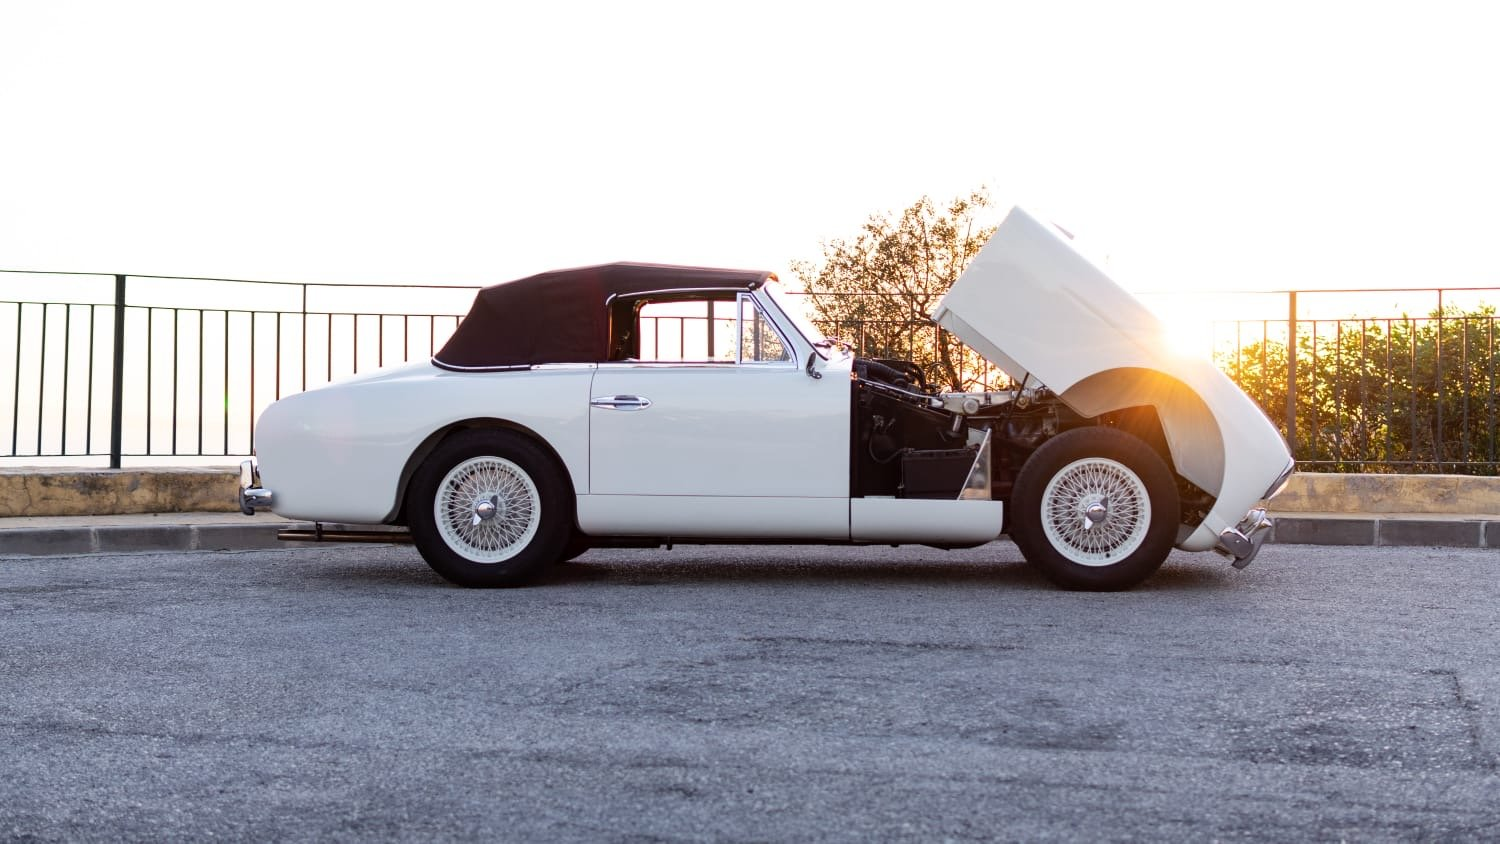 1954 Aston martin db2/4 mk i convertible For Sale (picture 2 of 6)